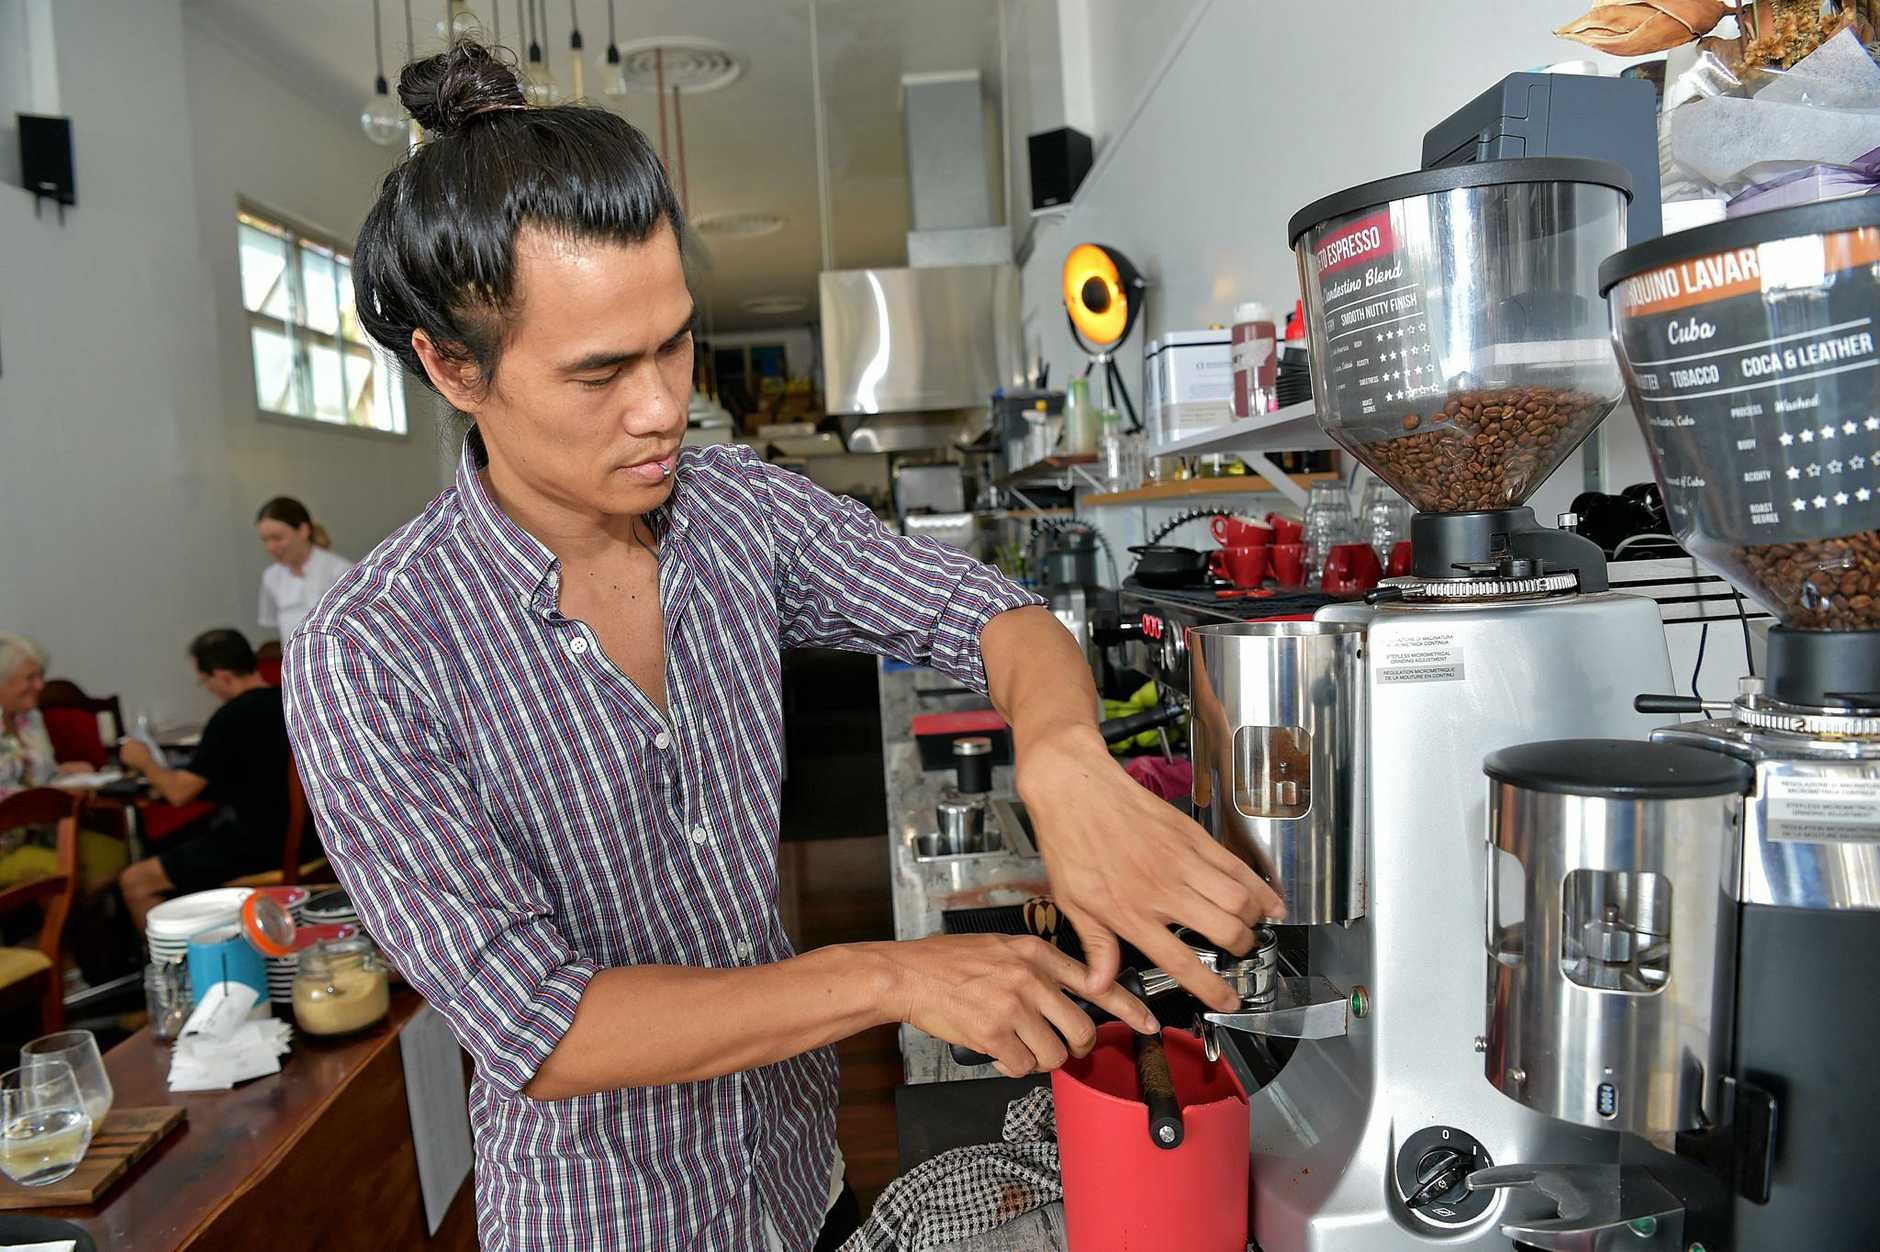 Vila Kone, the owner of Nambour Social, said the town would feel the impact if the council relocated a large proportion of its staff to Maroochydore.